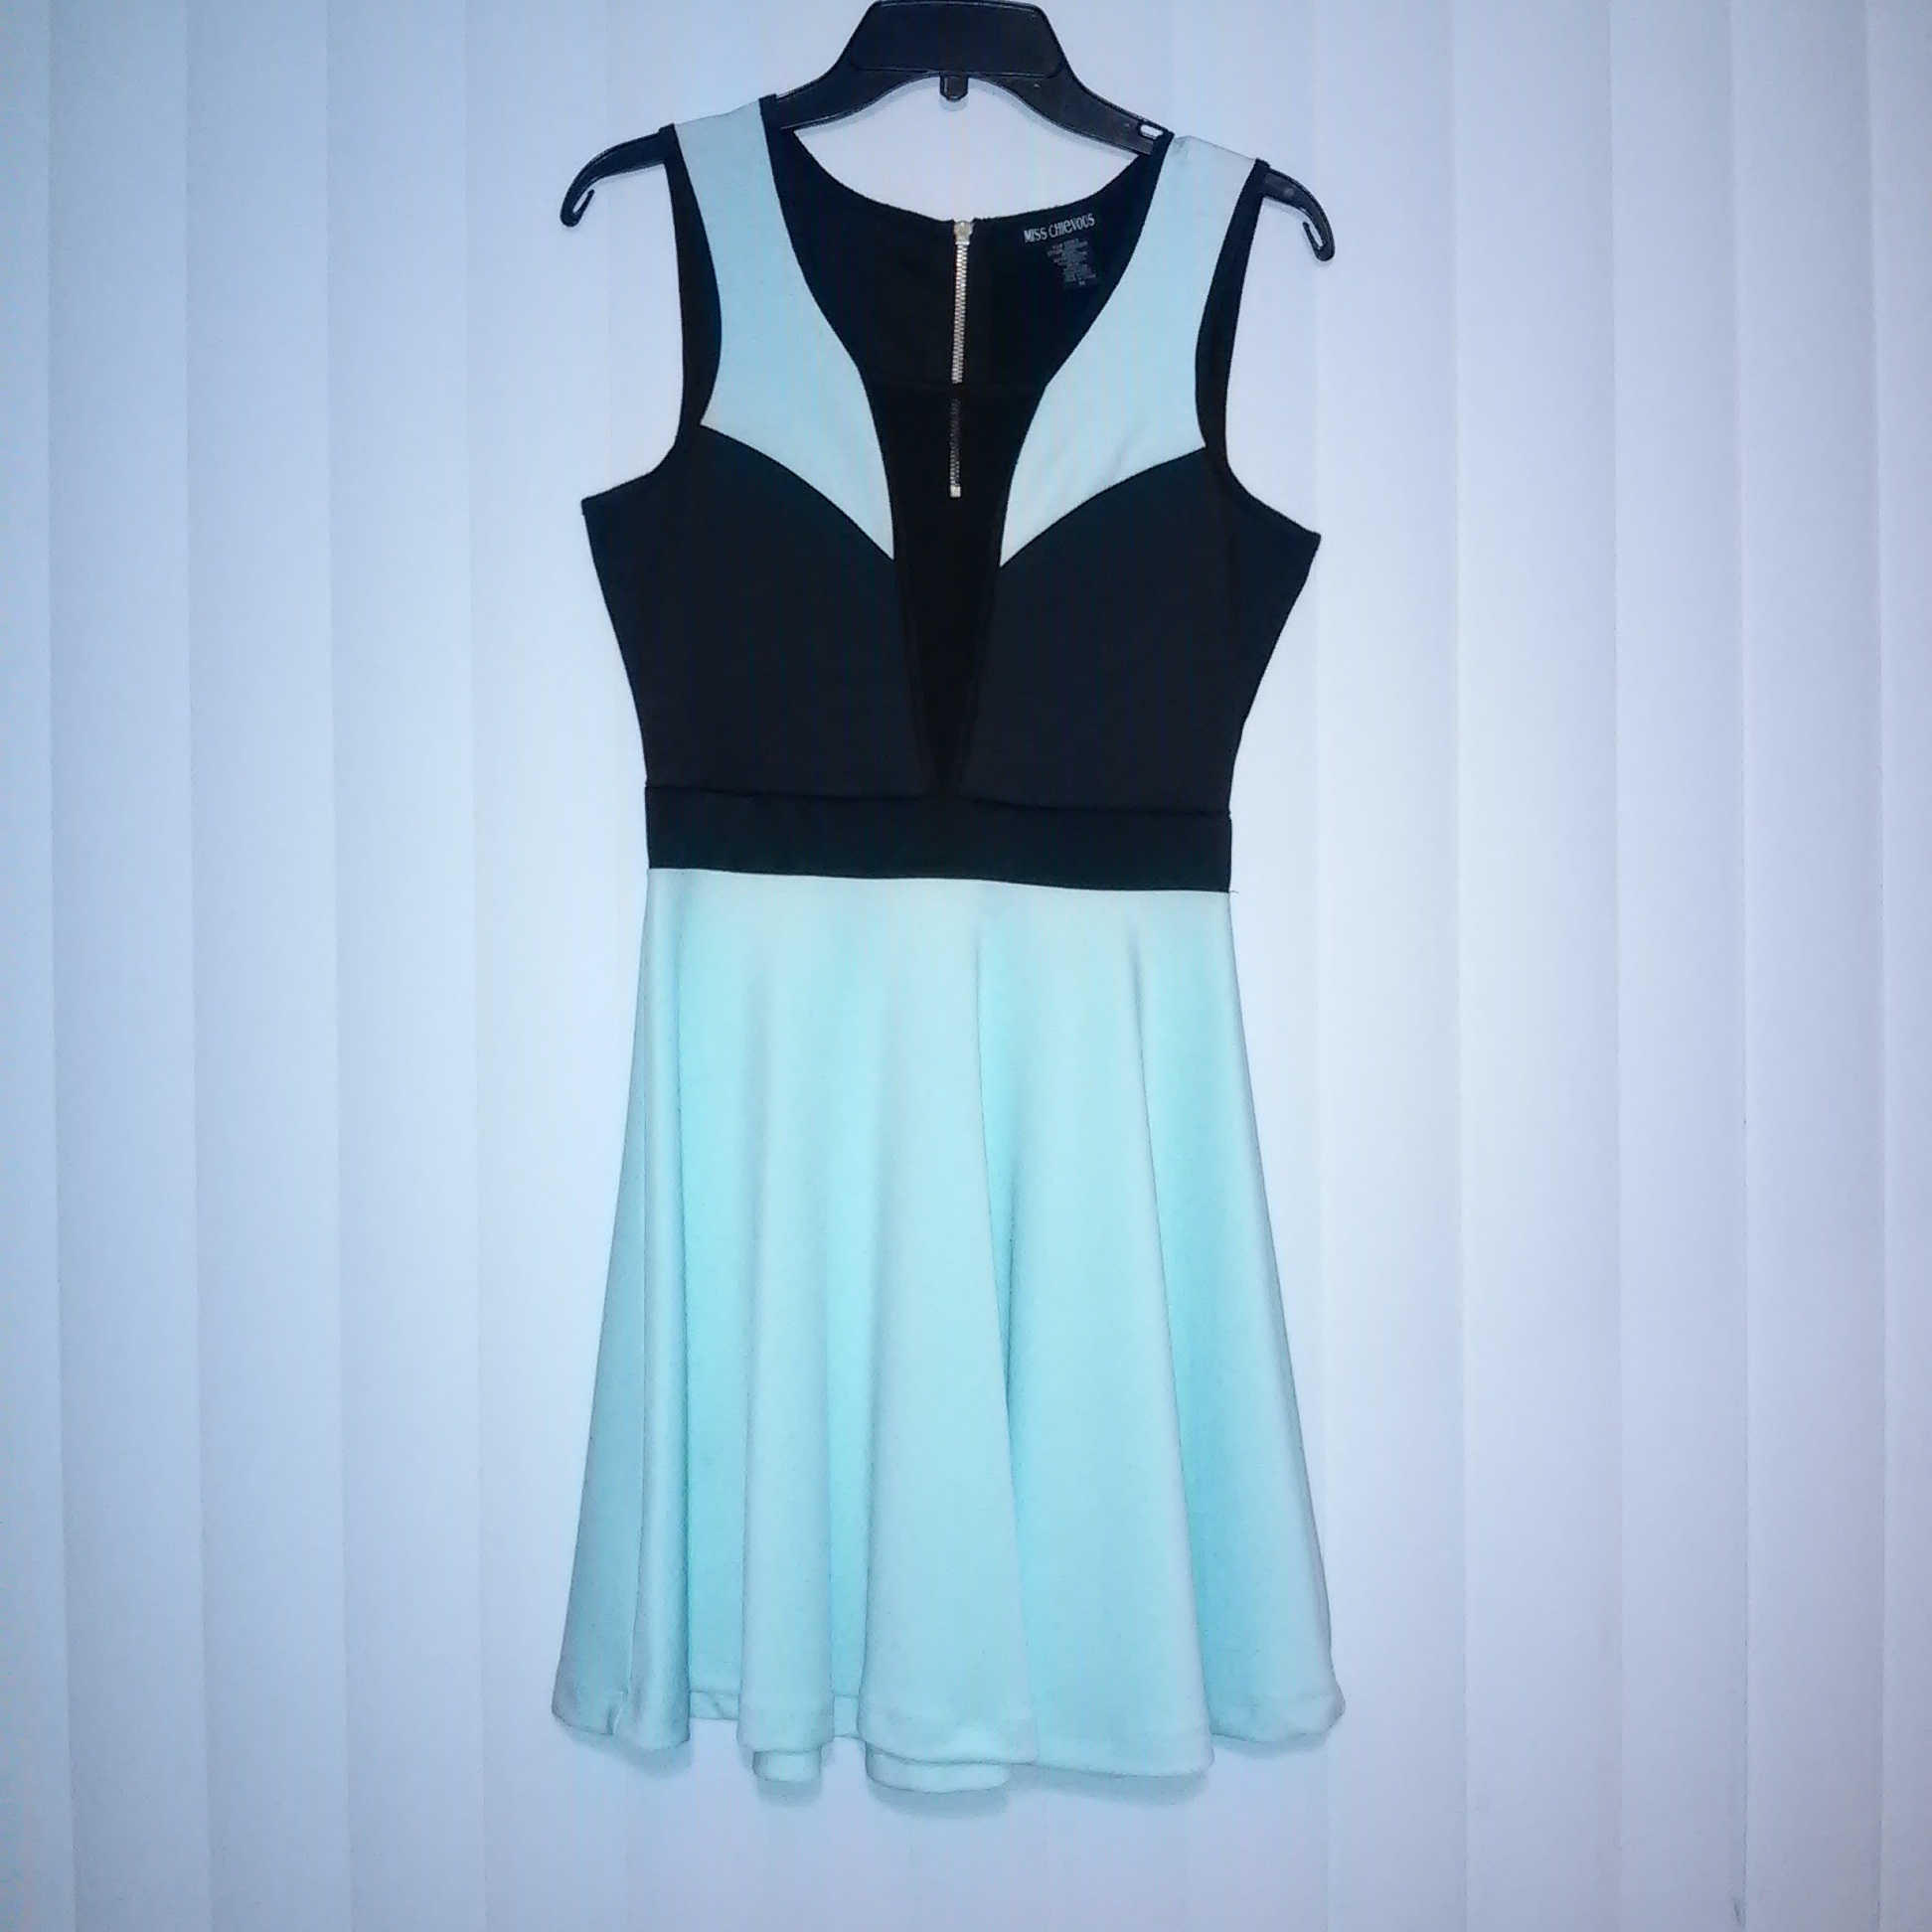 Miss Chievous Light Blue and Black Fit and Flare Dress on Storenvy 99b809760